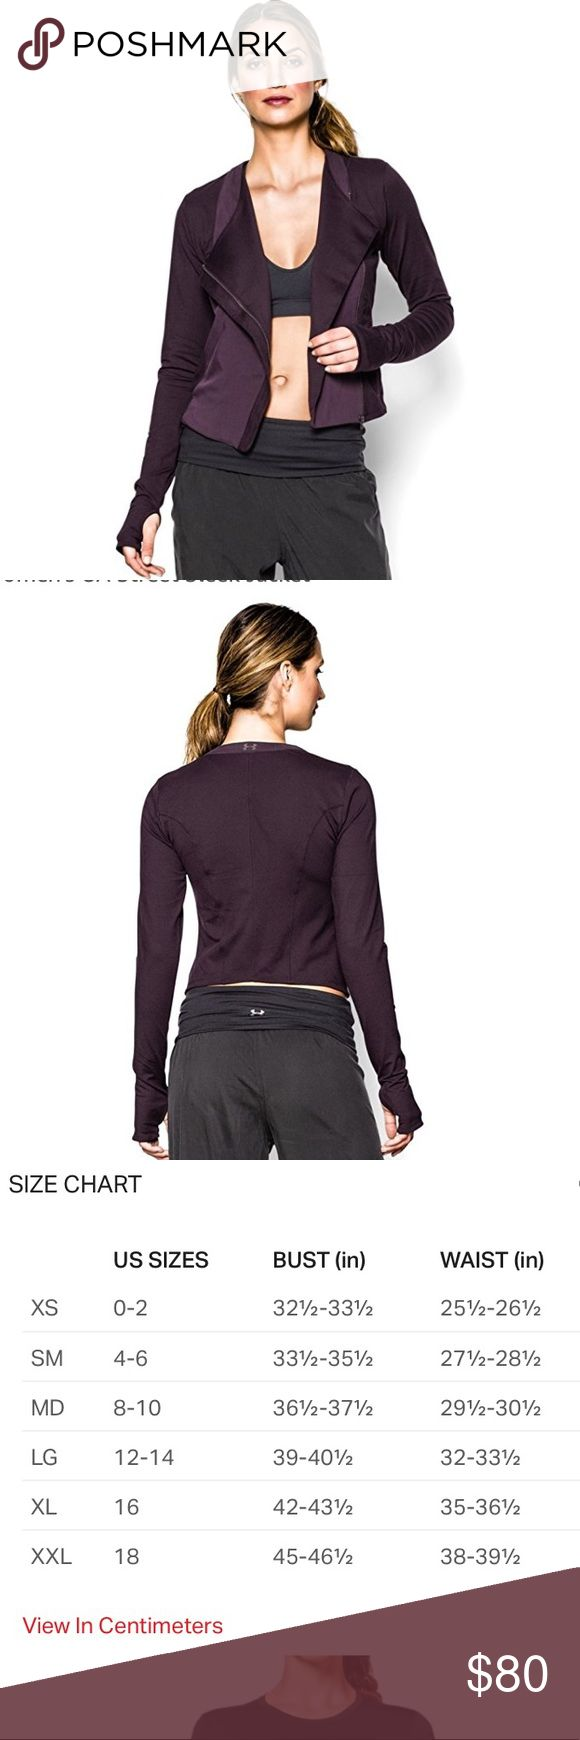 UNDER ARMOUR Large UA Street Sleek Fitted Jacket UNDER ARMOUR Large UA Street Sleek Fitted Jacket Plum   Brand new w/ tags. Light and perfect for gym, workout, exercise, yoga, or fitness classes.   super soft and is in a plum / purple color tone  Light & luxurious w/ signature UA StudioLux sleeves for unparalleled support & comfort Signature Moisture Transport System wicks sweat to keep you dry & light Graduated moto-inspired hem is longer in the front & shorter in the back Asymmetrical…